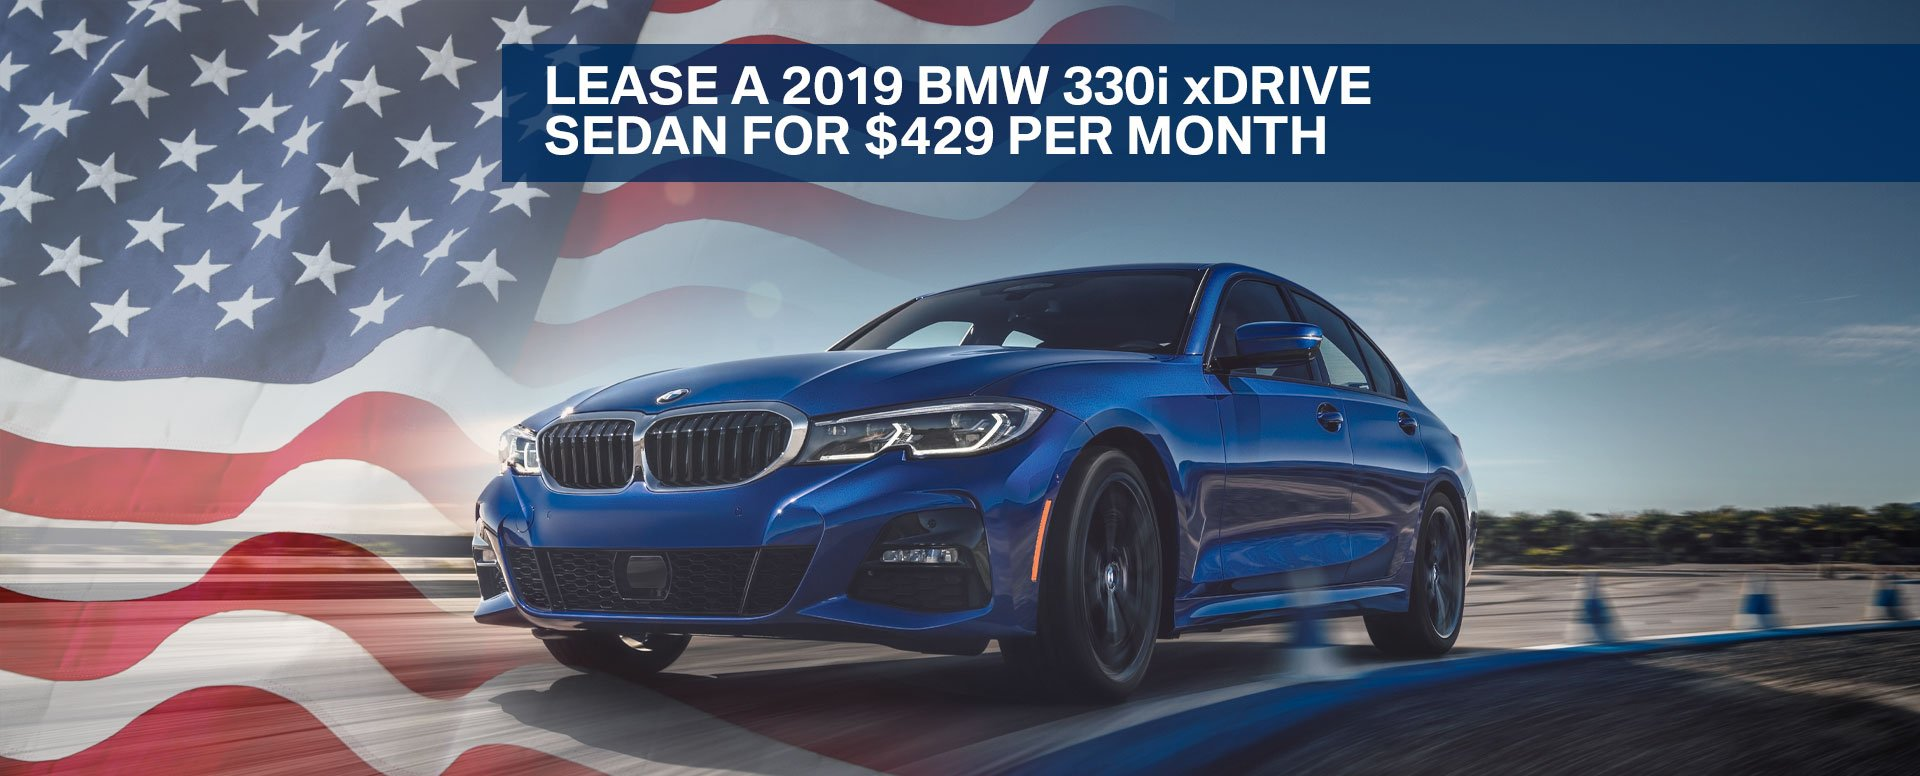 Lease a 2019 BMW 330i xDrive sedan for $429 per month at